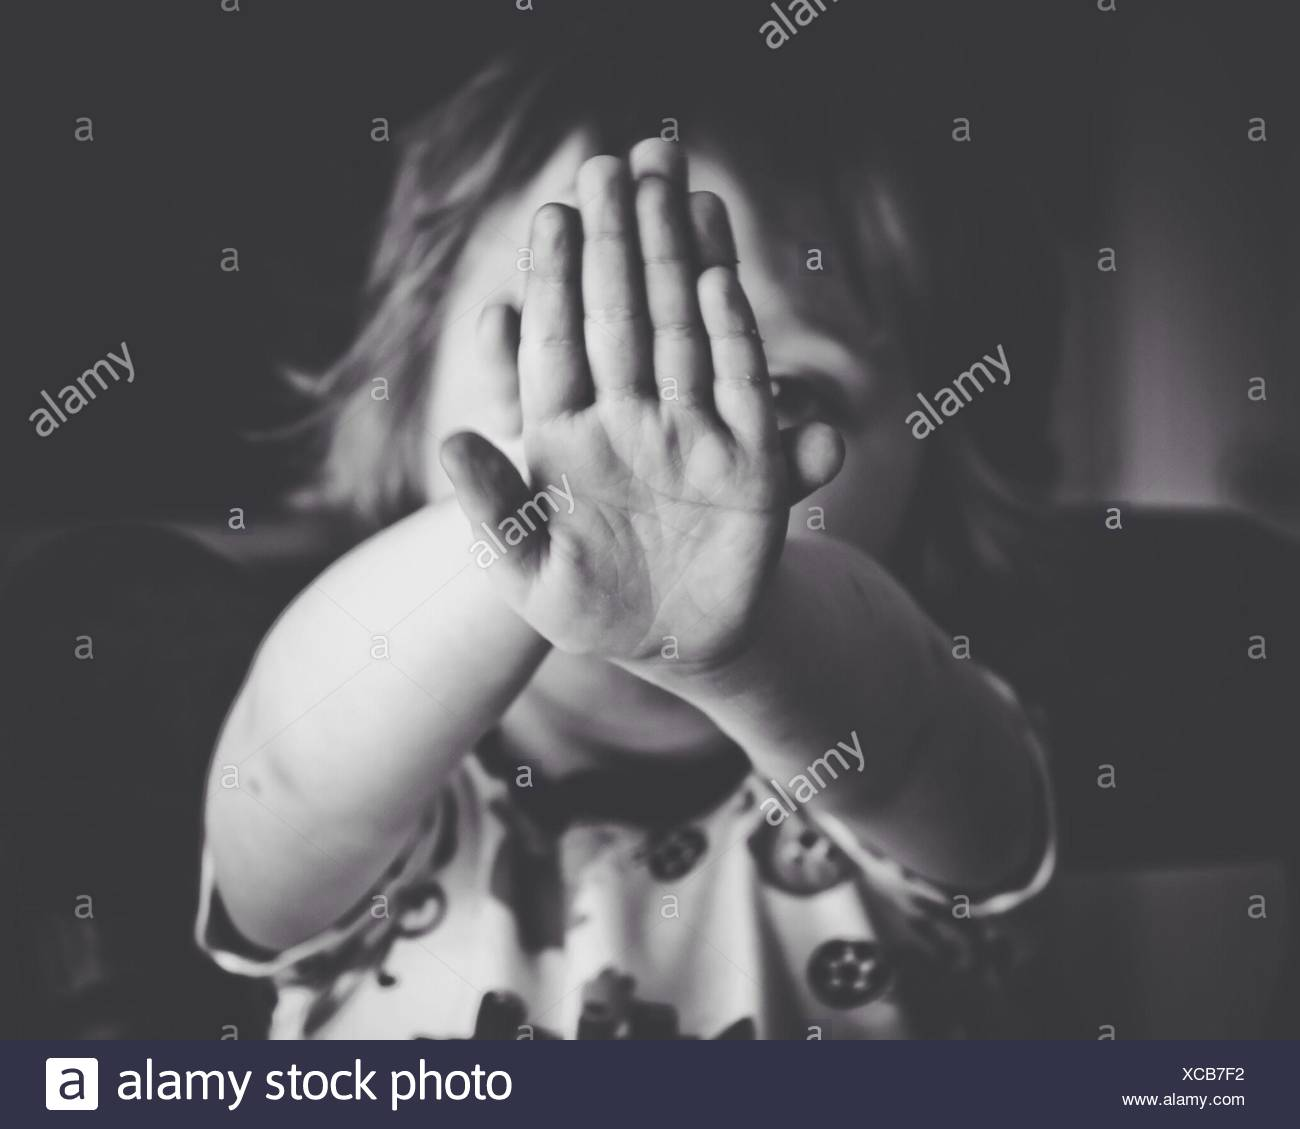 Close-Up Portrait Of Girl Hiding Face - Stock Image